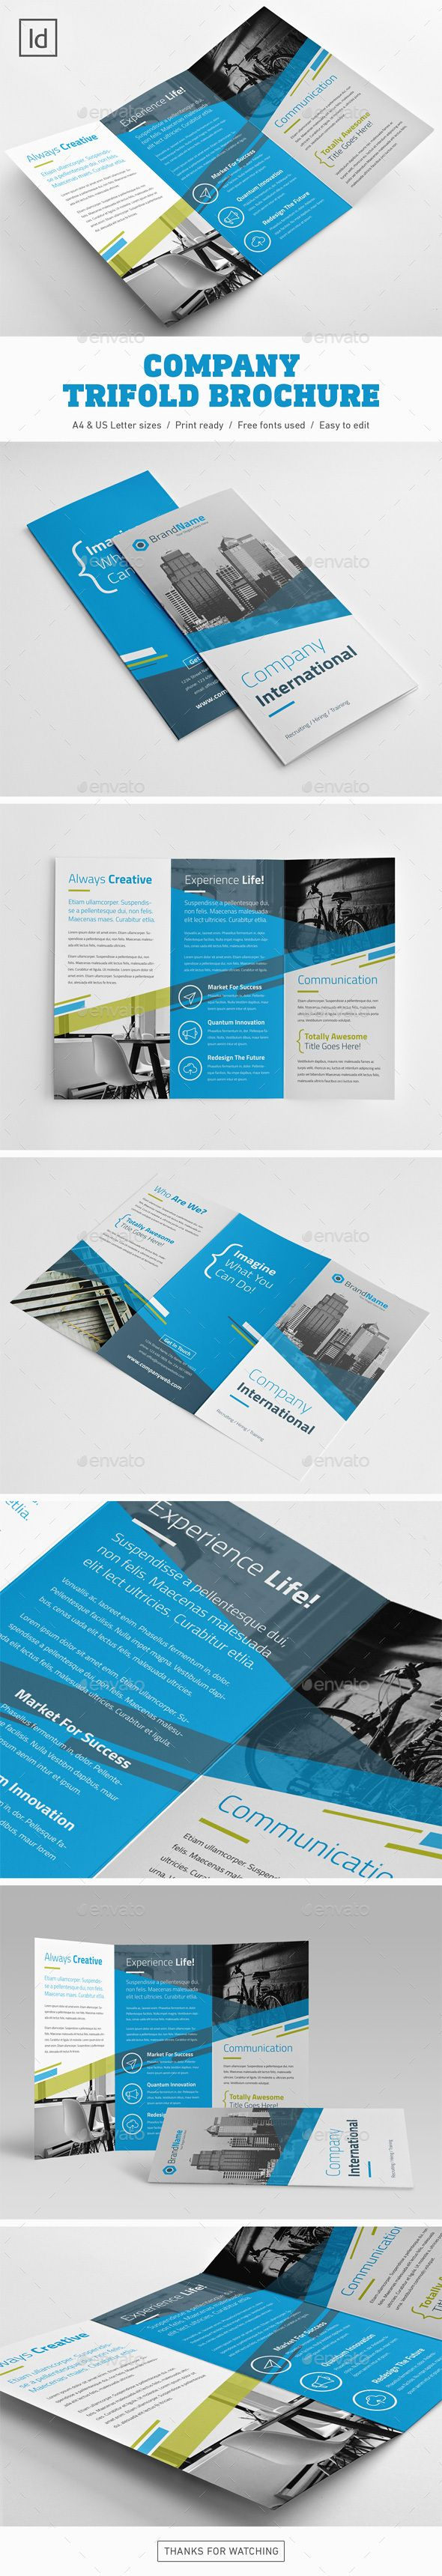 Company Trifold Brochure Design Template - Brochures Print Template InDesign IND...